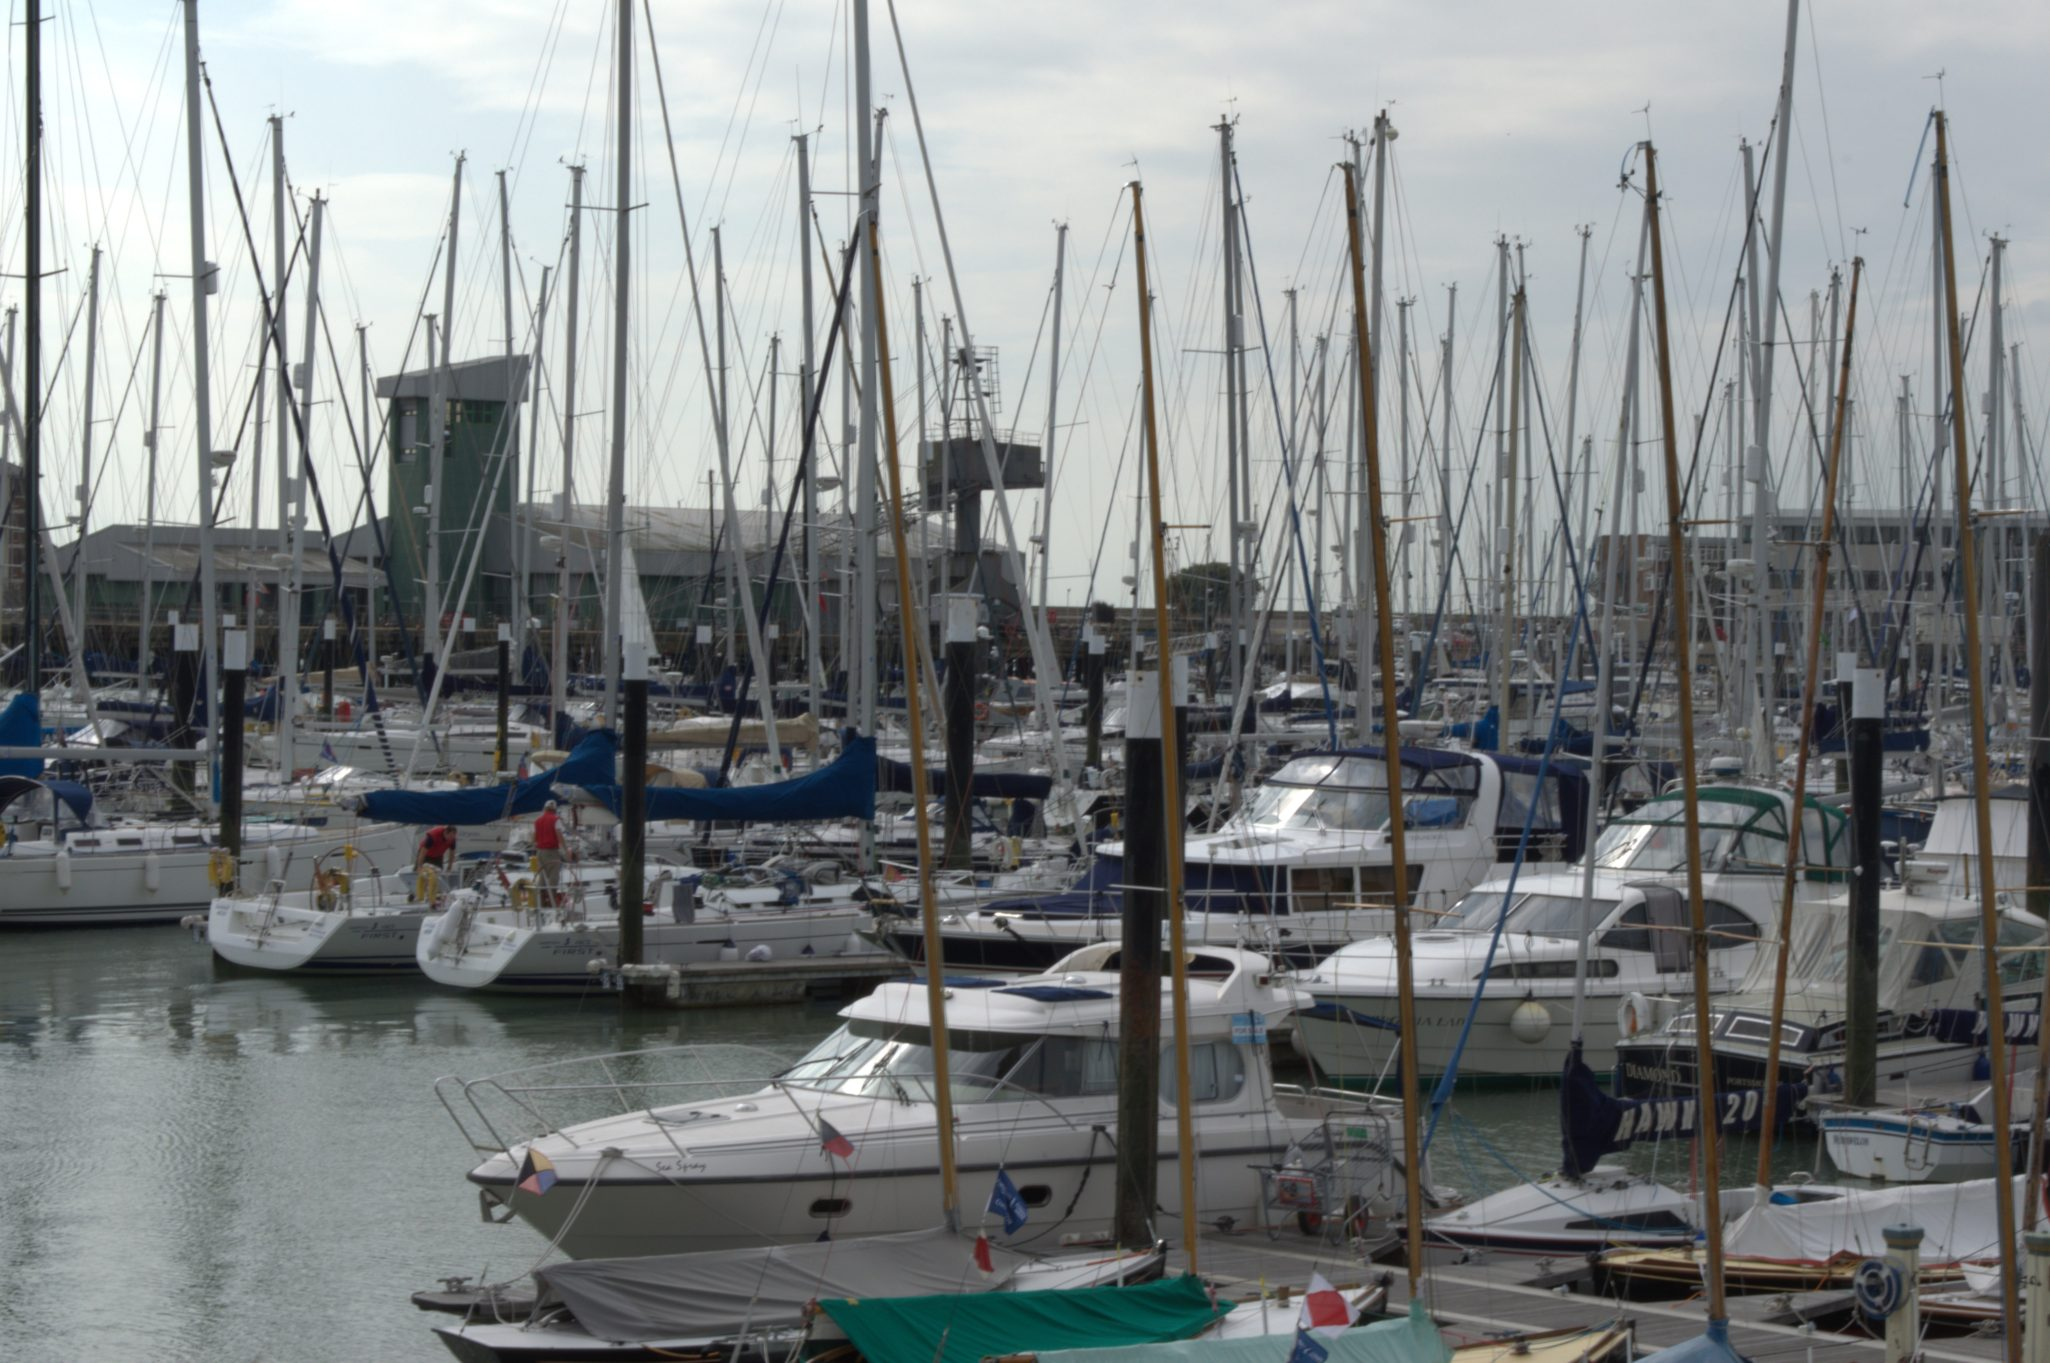 Boatbreakers News - Sell Your Boat to Buy Any Boat